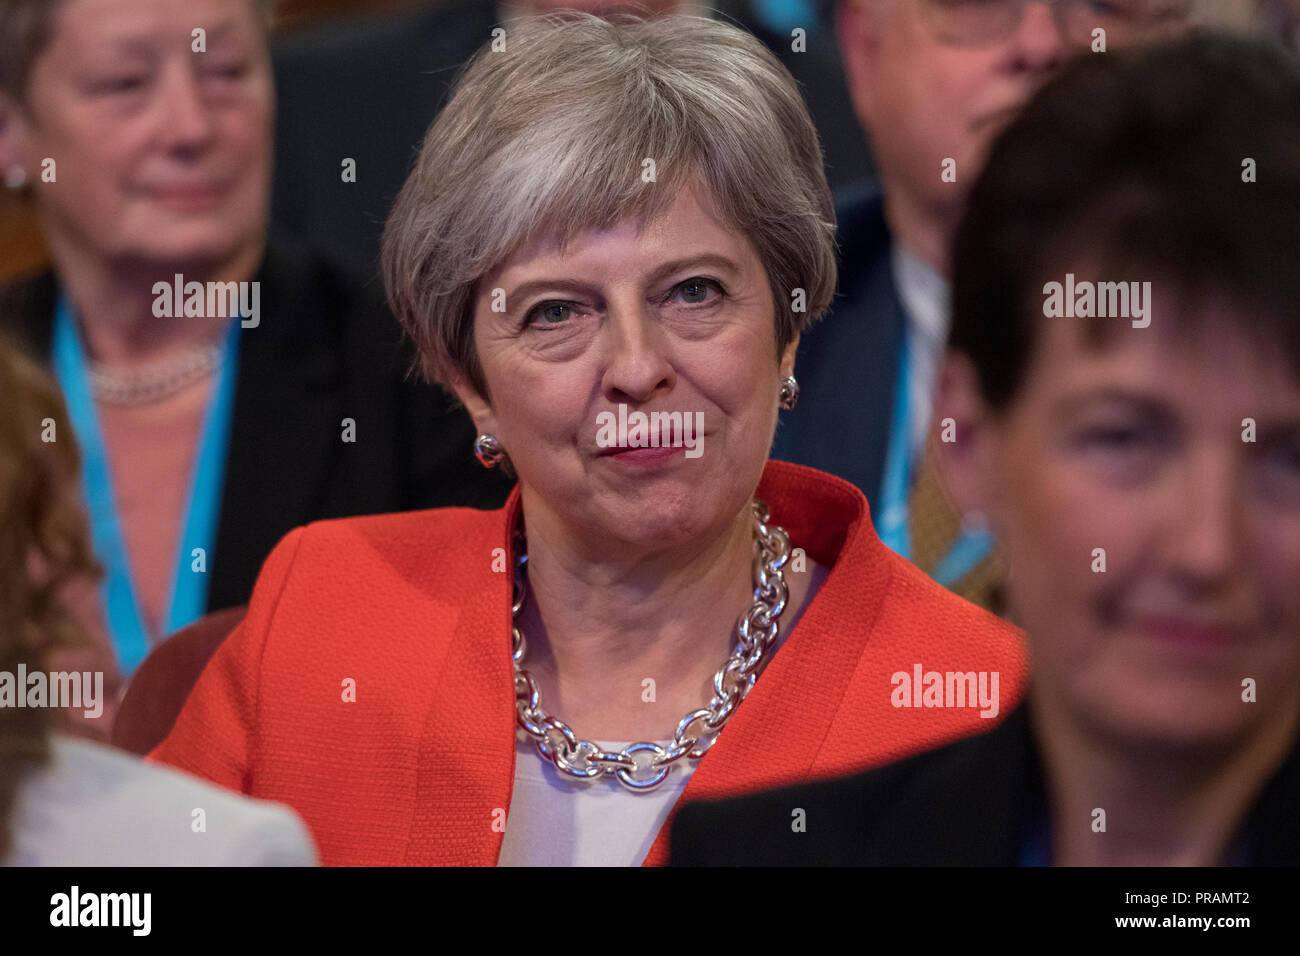 Birmingham, UK. 30 September 2018 - Prime Minister Theresa May watches Brandon Lewis at the Conservative Party Conference 2018 in Birmingham ICC. At times she is seen smiling and frowning, looking angry, and closing her eyes. Credit: Benjamin Wareing/Alamy Live News - Stock Image